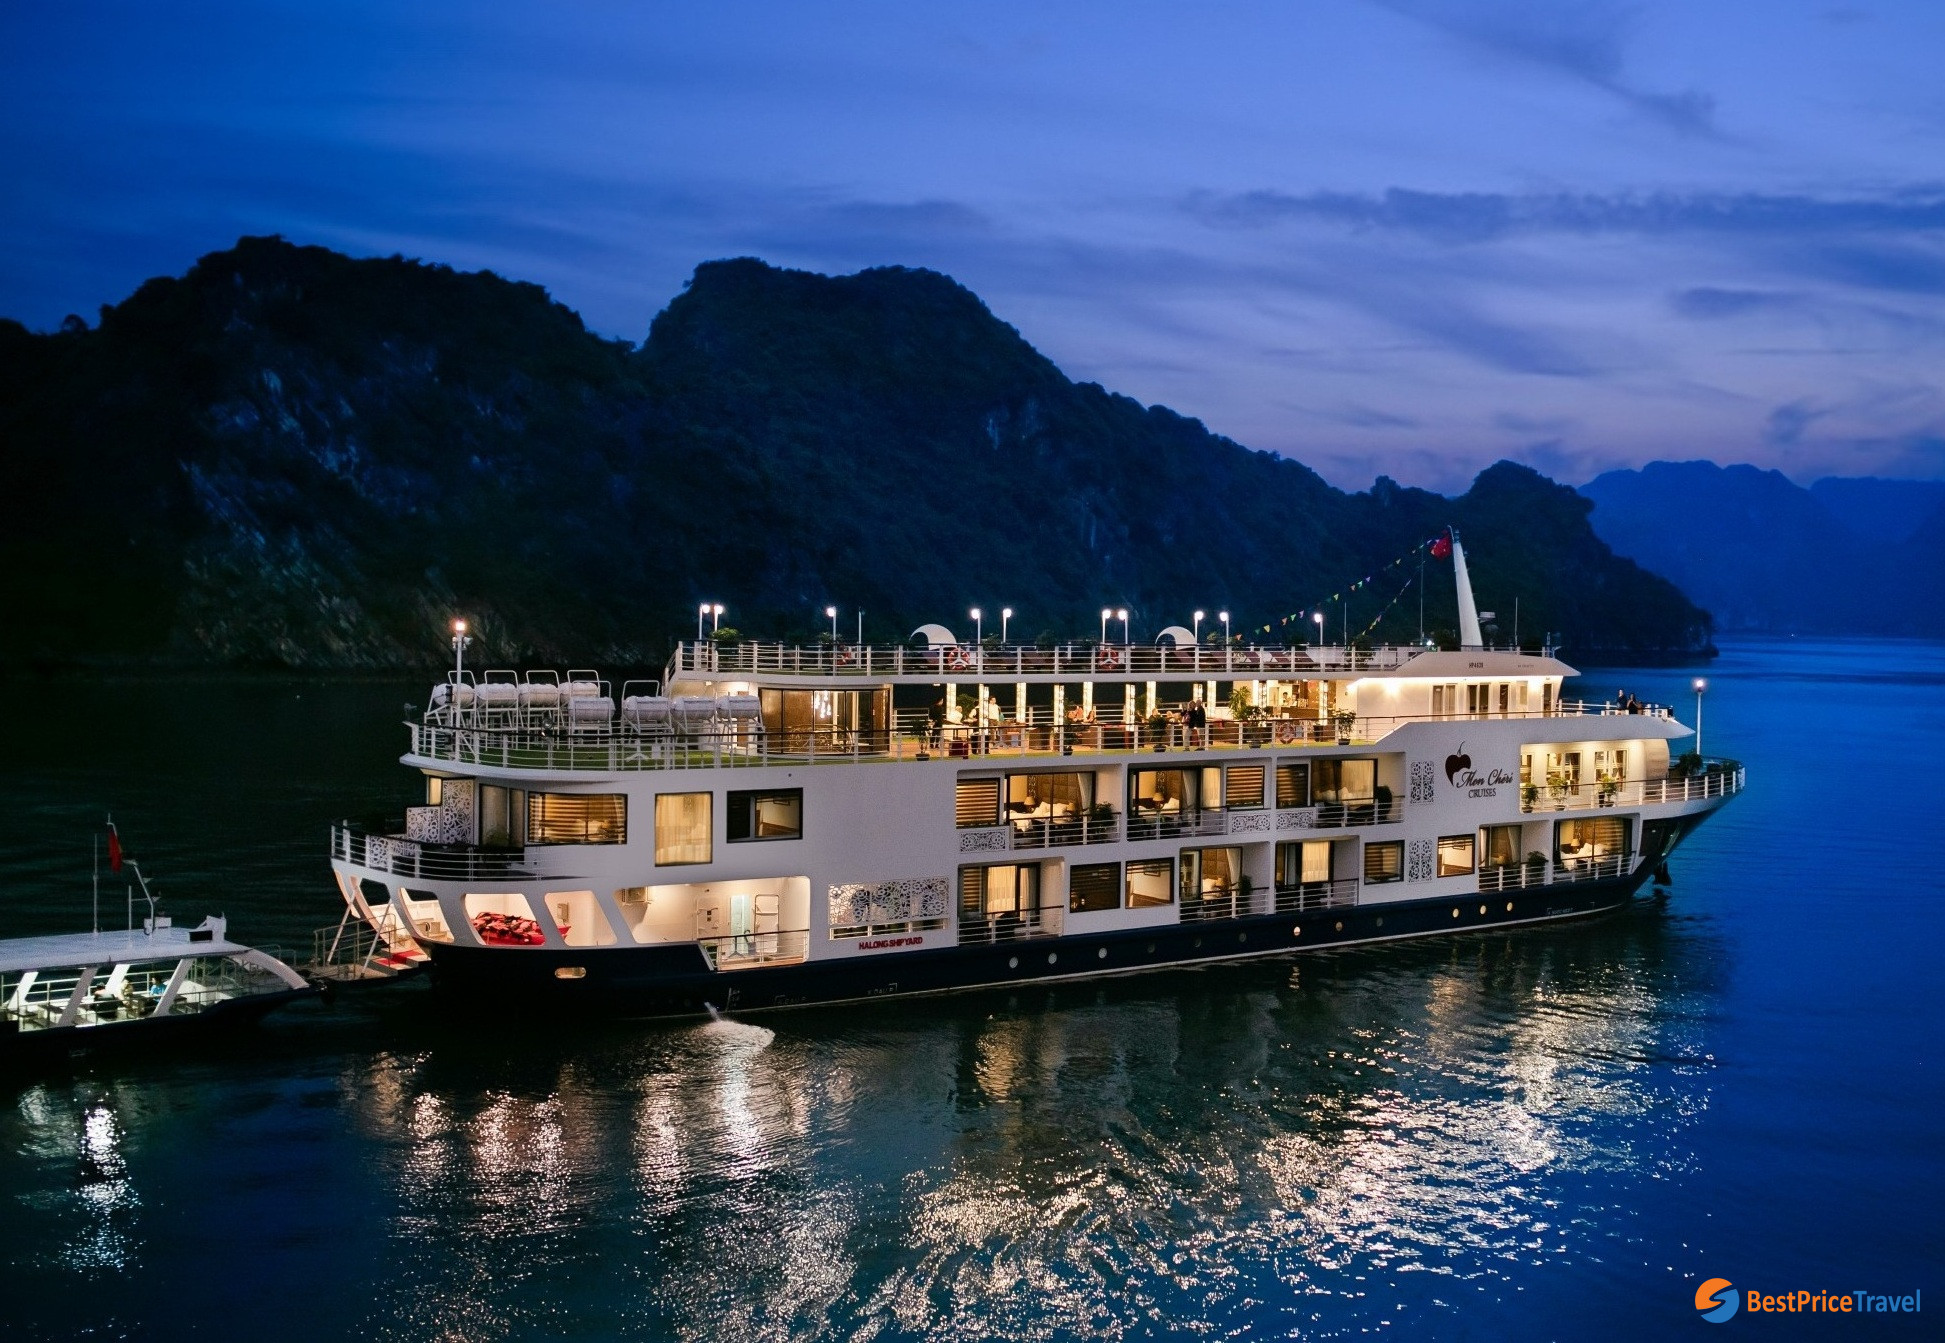 An overnight cruise is most recommended for Halong Bay tour itinerary